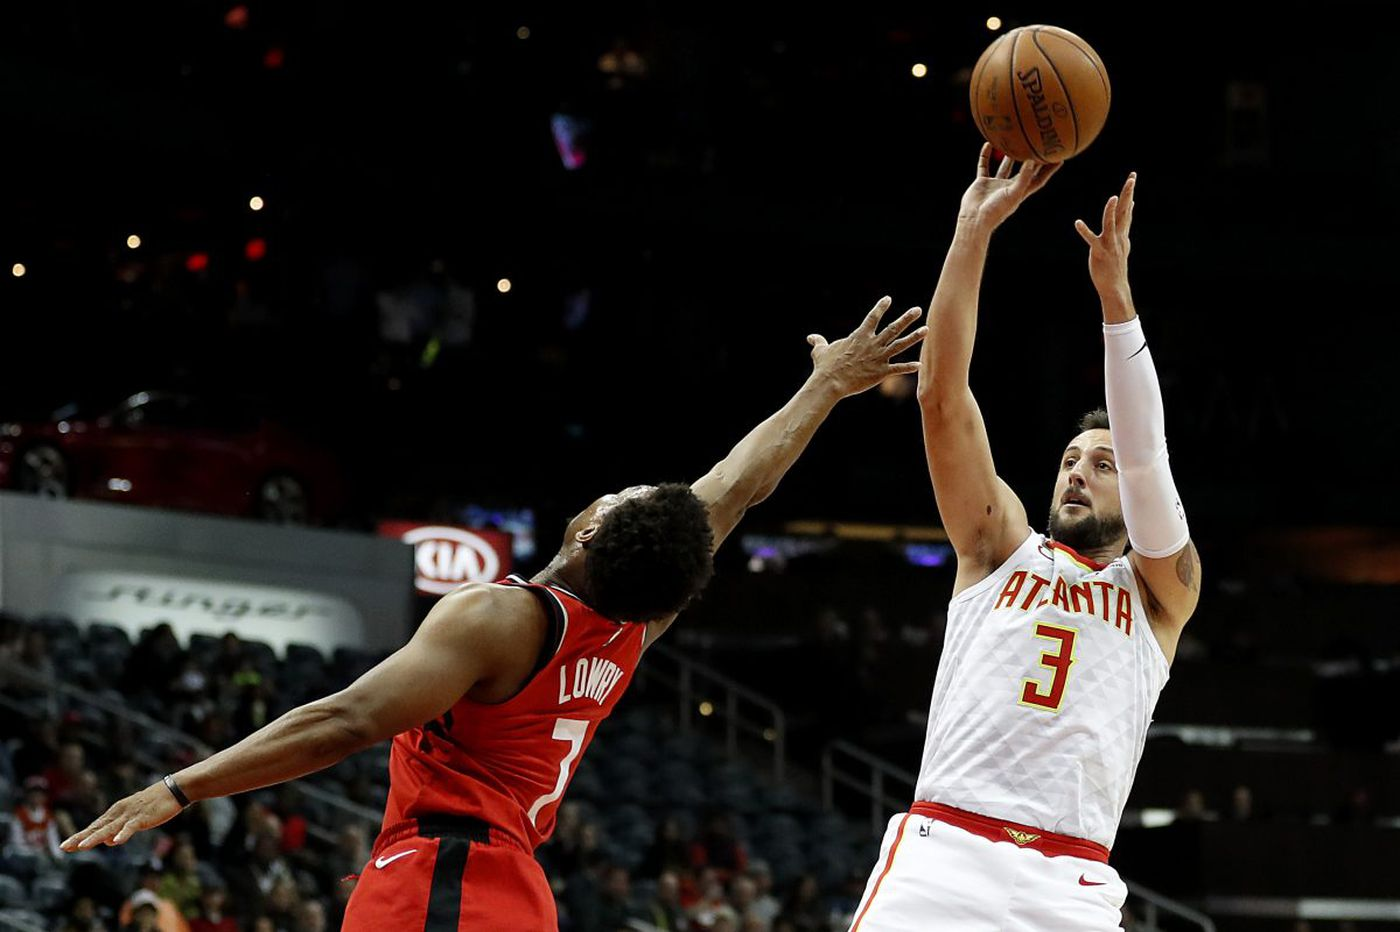 Marco Belinelli to be the JJ Redick of the Sixers bench